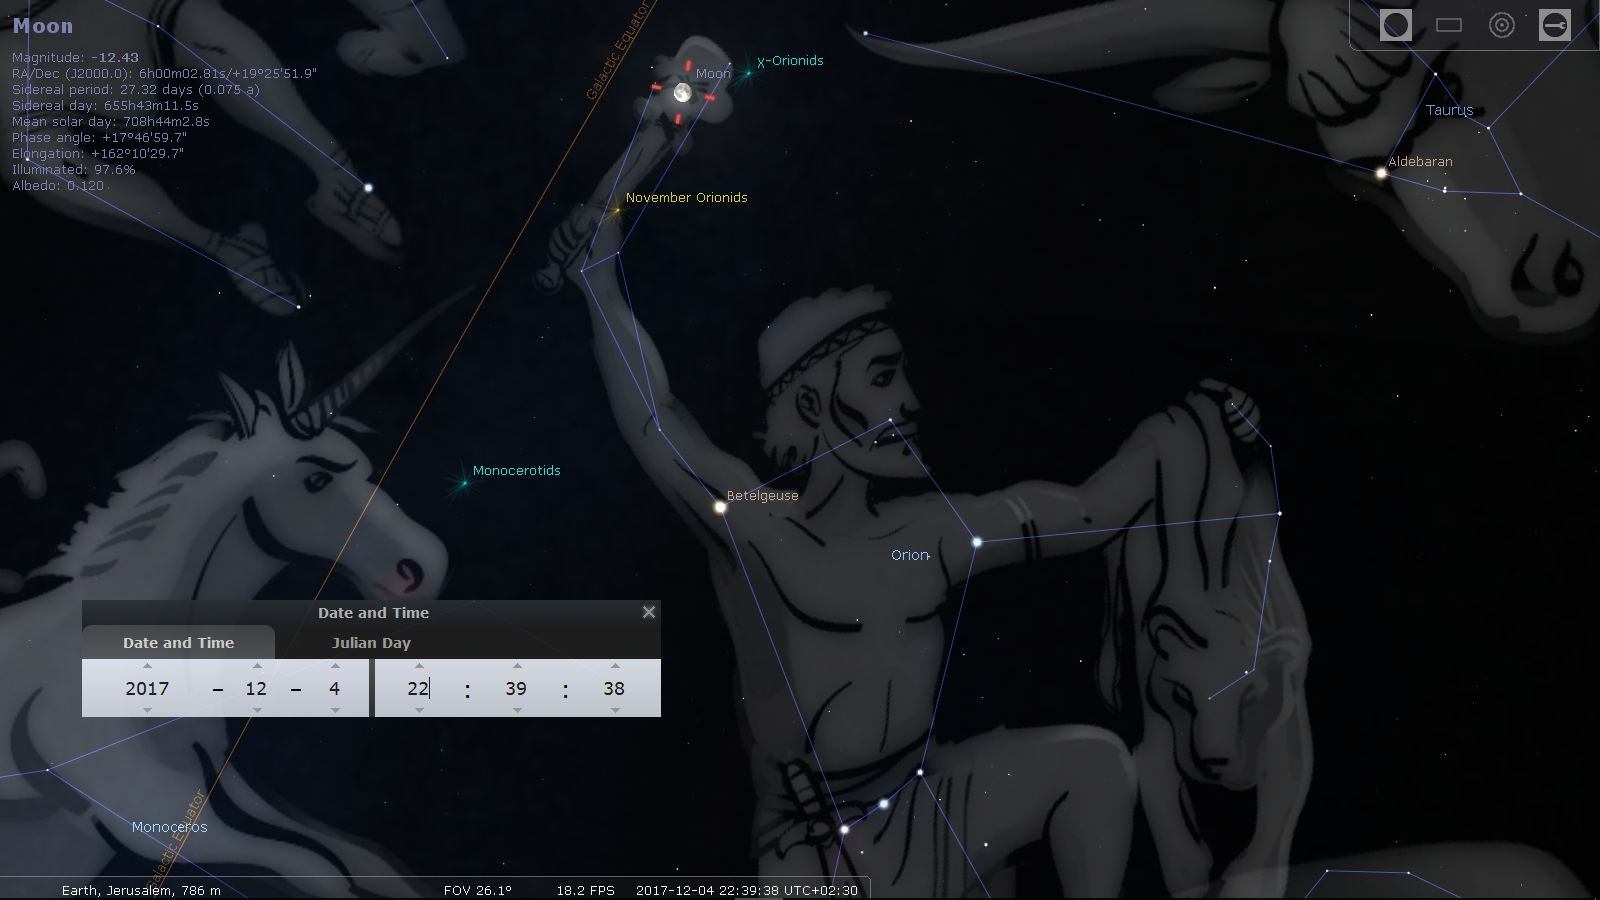 The Supermoon in Orion's Hand